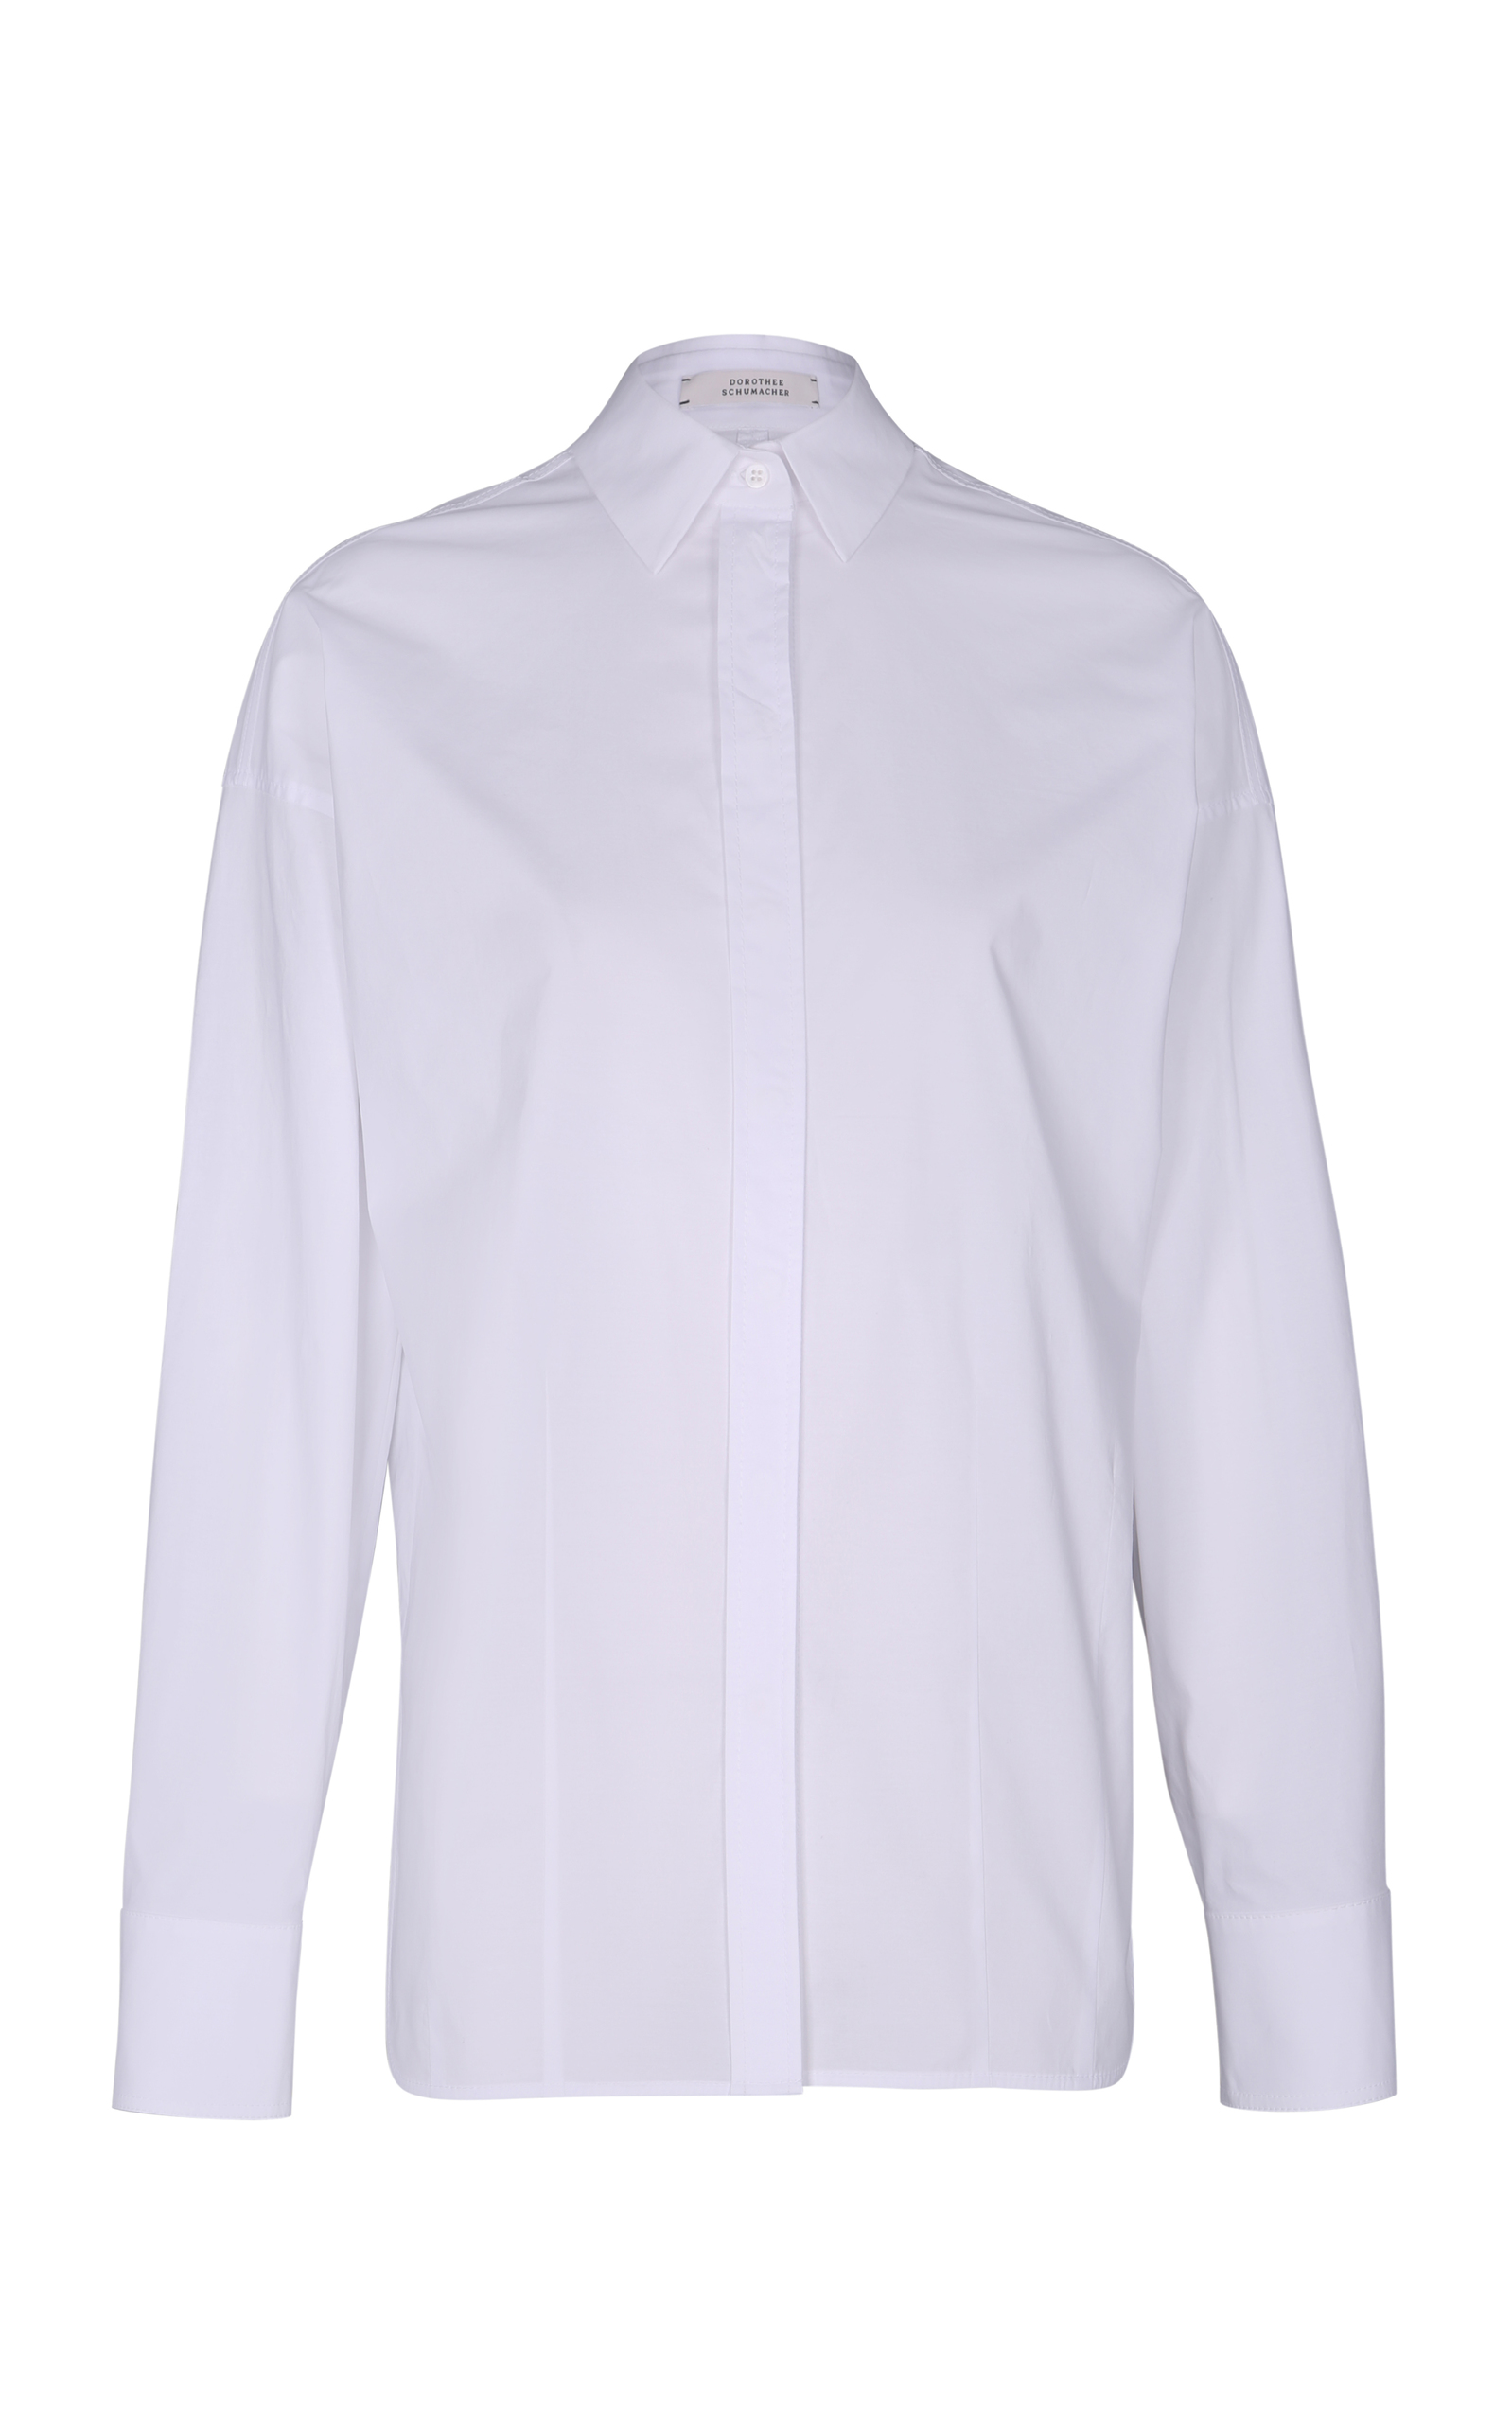 2ae7662e67d48 Casual Chic Classic Blouse by Dorothee Schumacher